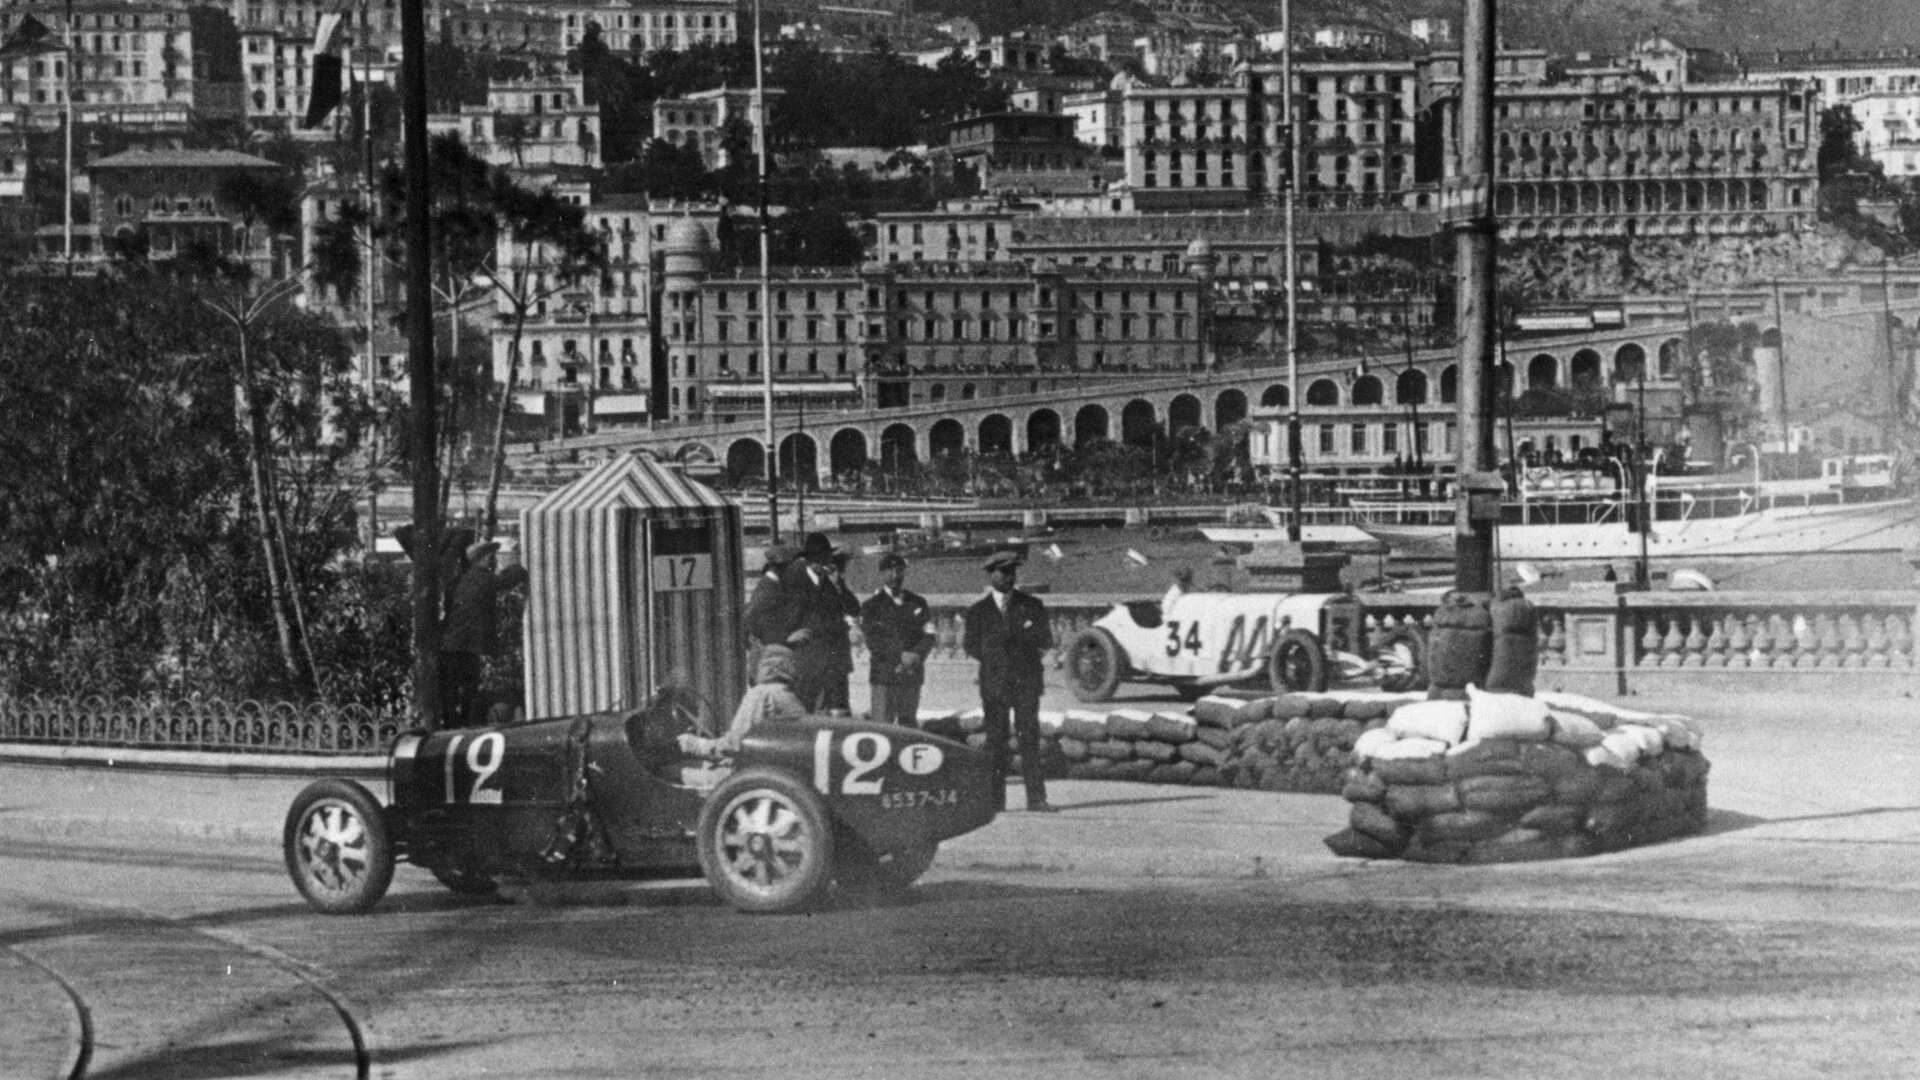 First victory at the First Grand Prix in Monaco in 1929